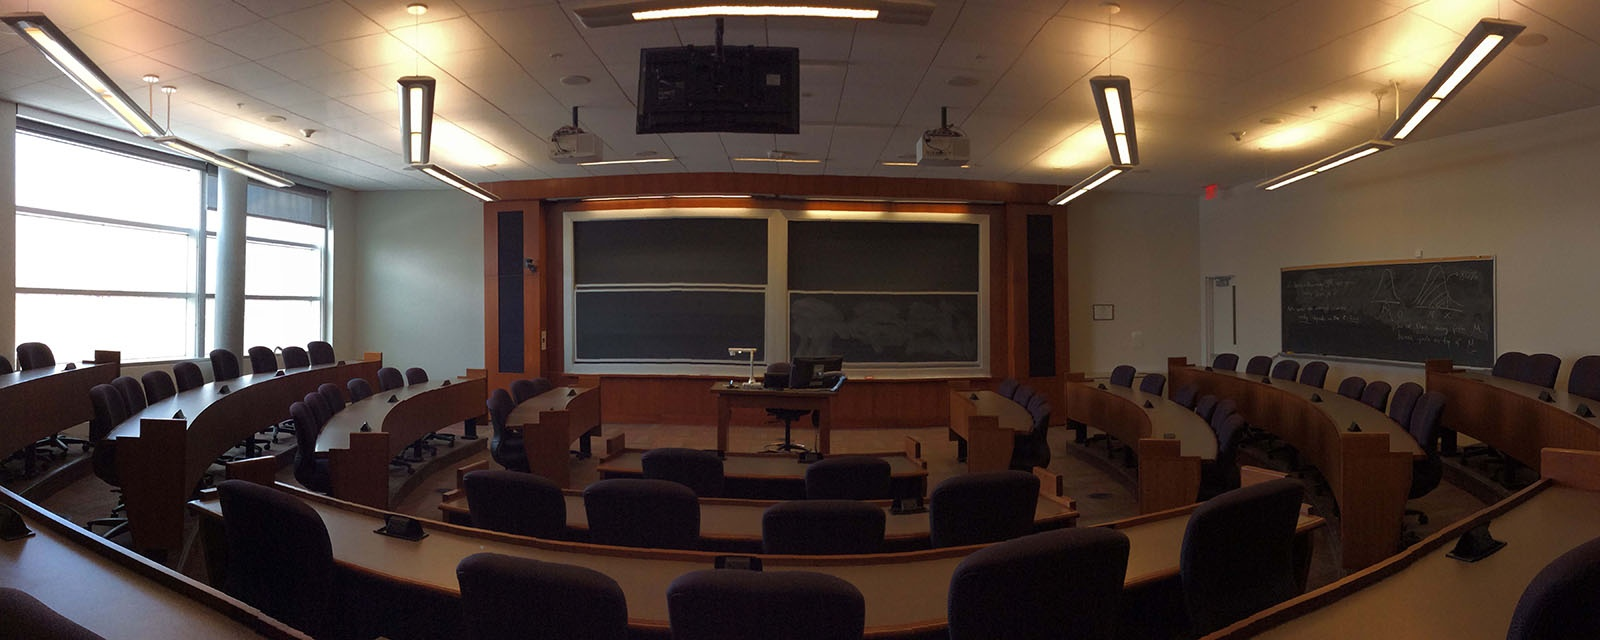 Panorama SOM 303 from back of room, stadium seating, movable chairs, teaching station in front left